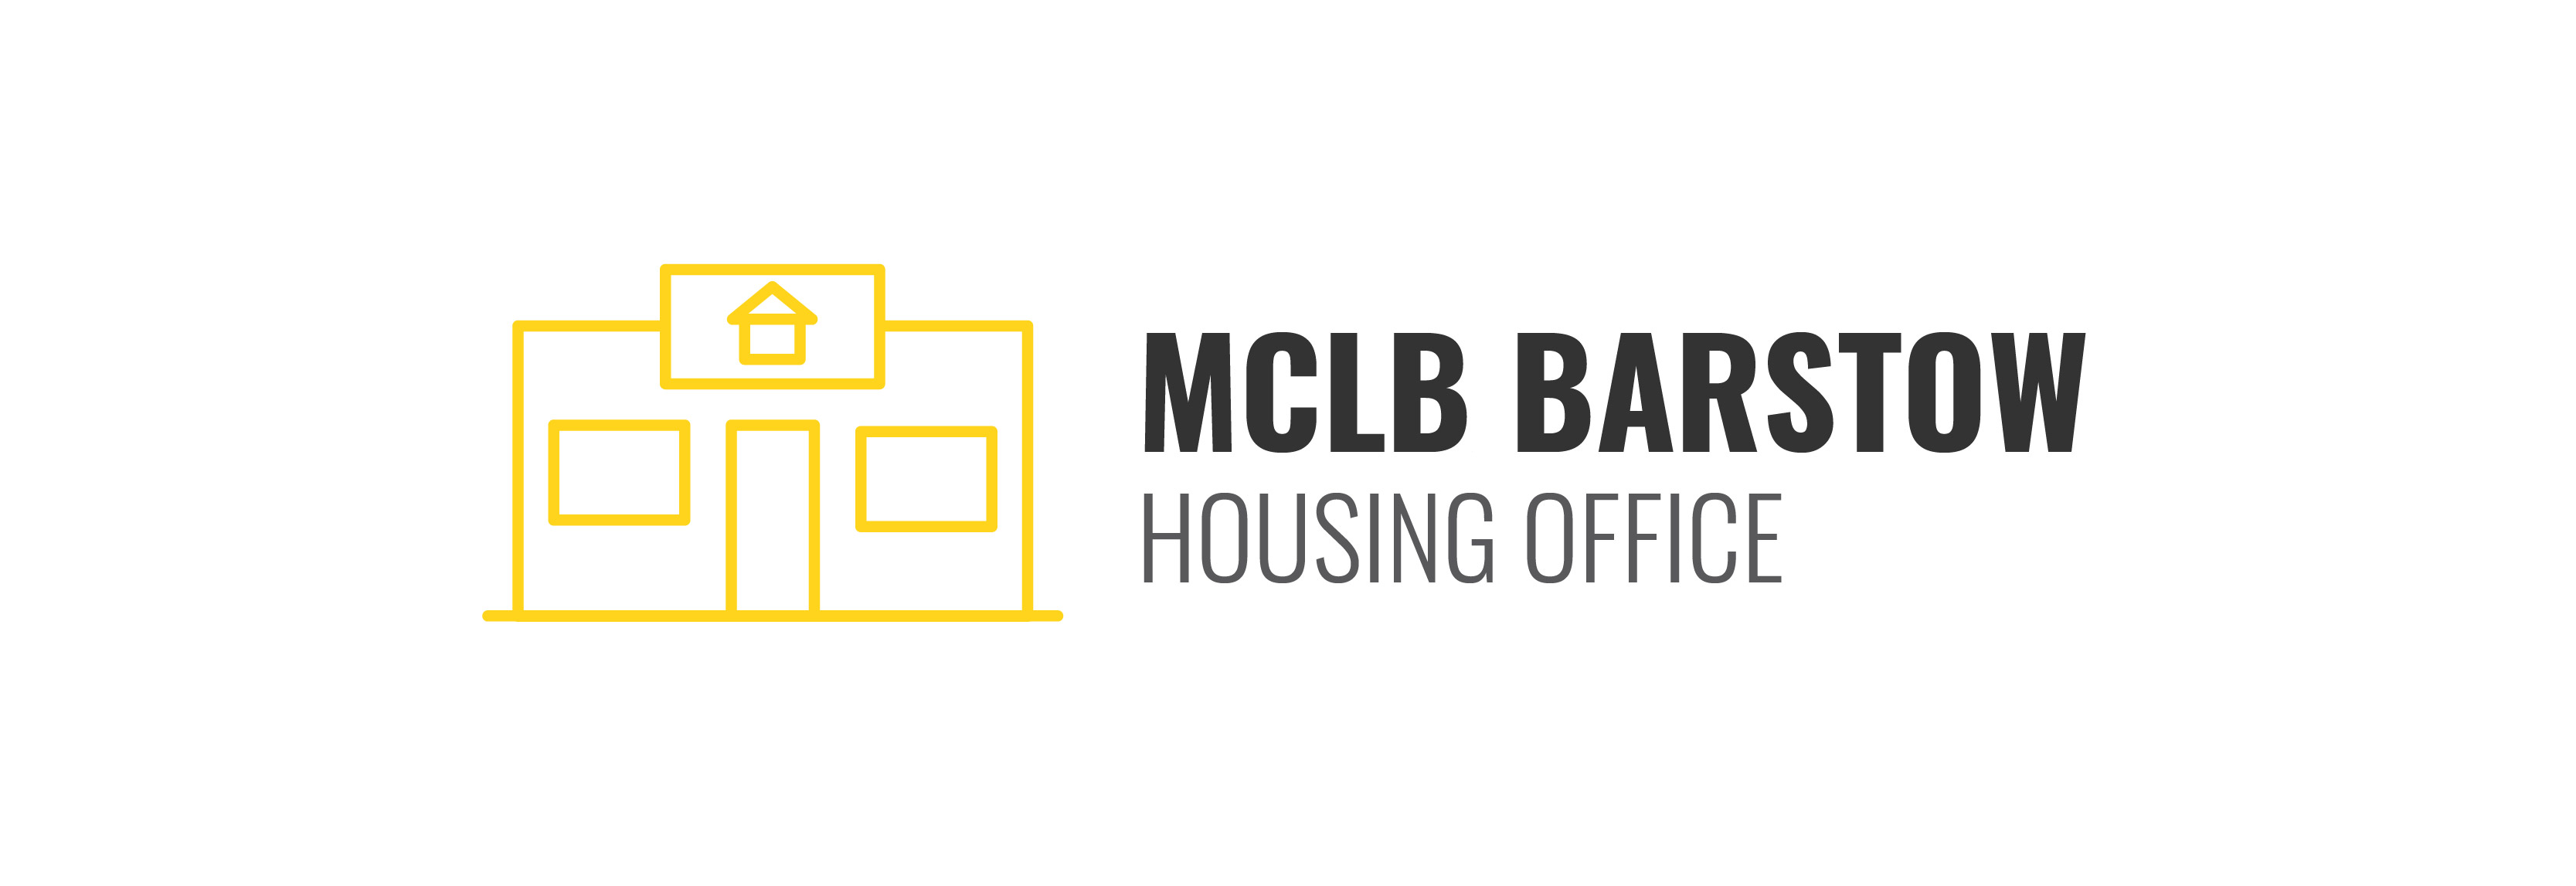 MCLB Barstow Housing Office